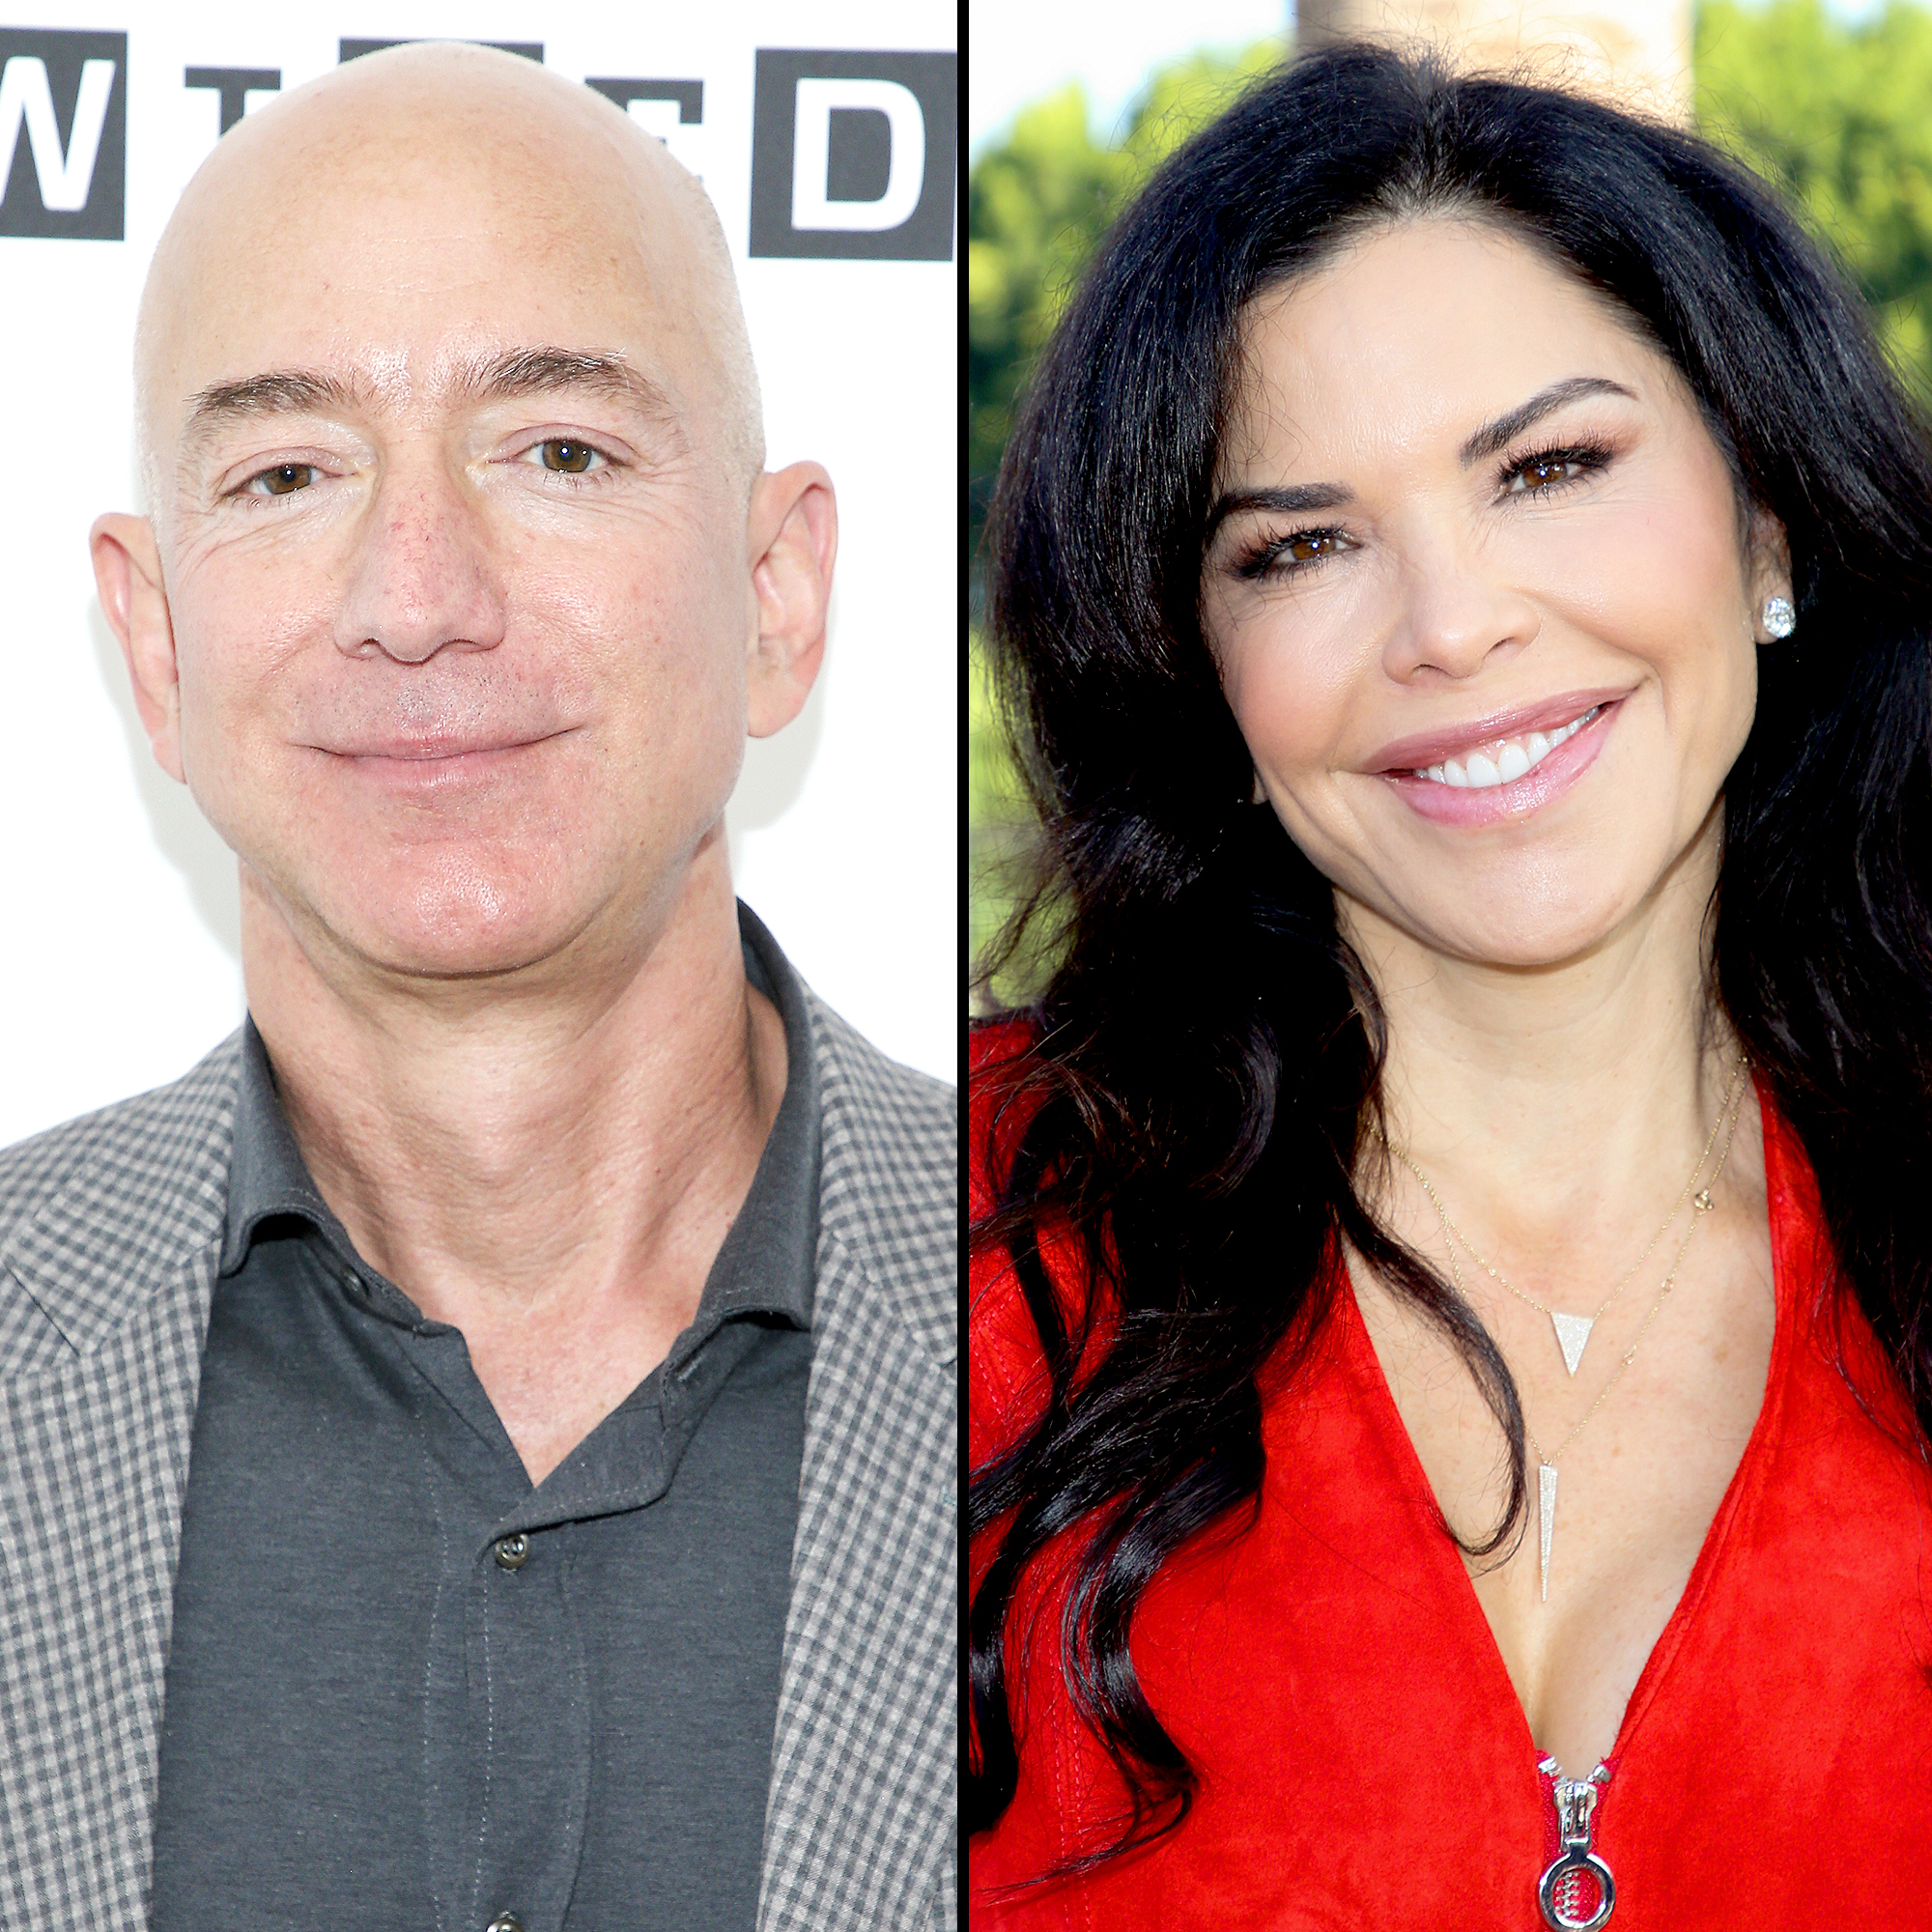 "Jeff-Bezos-and-Lauren-Sanchez-dinner-date-affair - The National Enquirer reported on several more of the businessman's text exchanges with Sánchez from September 11, 2018, in which he continued to profess his feelings. ""Lauren, I'm in love with you. Deep. I know it sounds strange, but even little things like you suggesting I ask for extra training from Bell make my love for you expand and grow,"" he wrote."